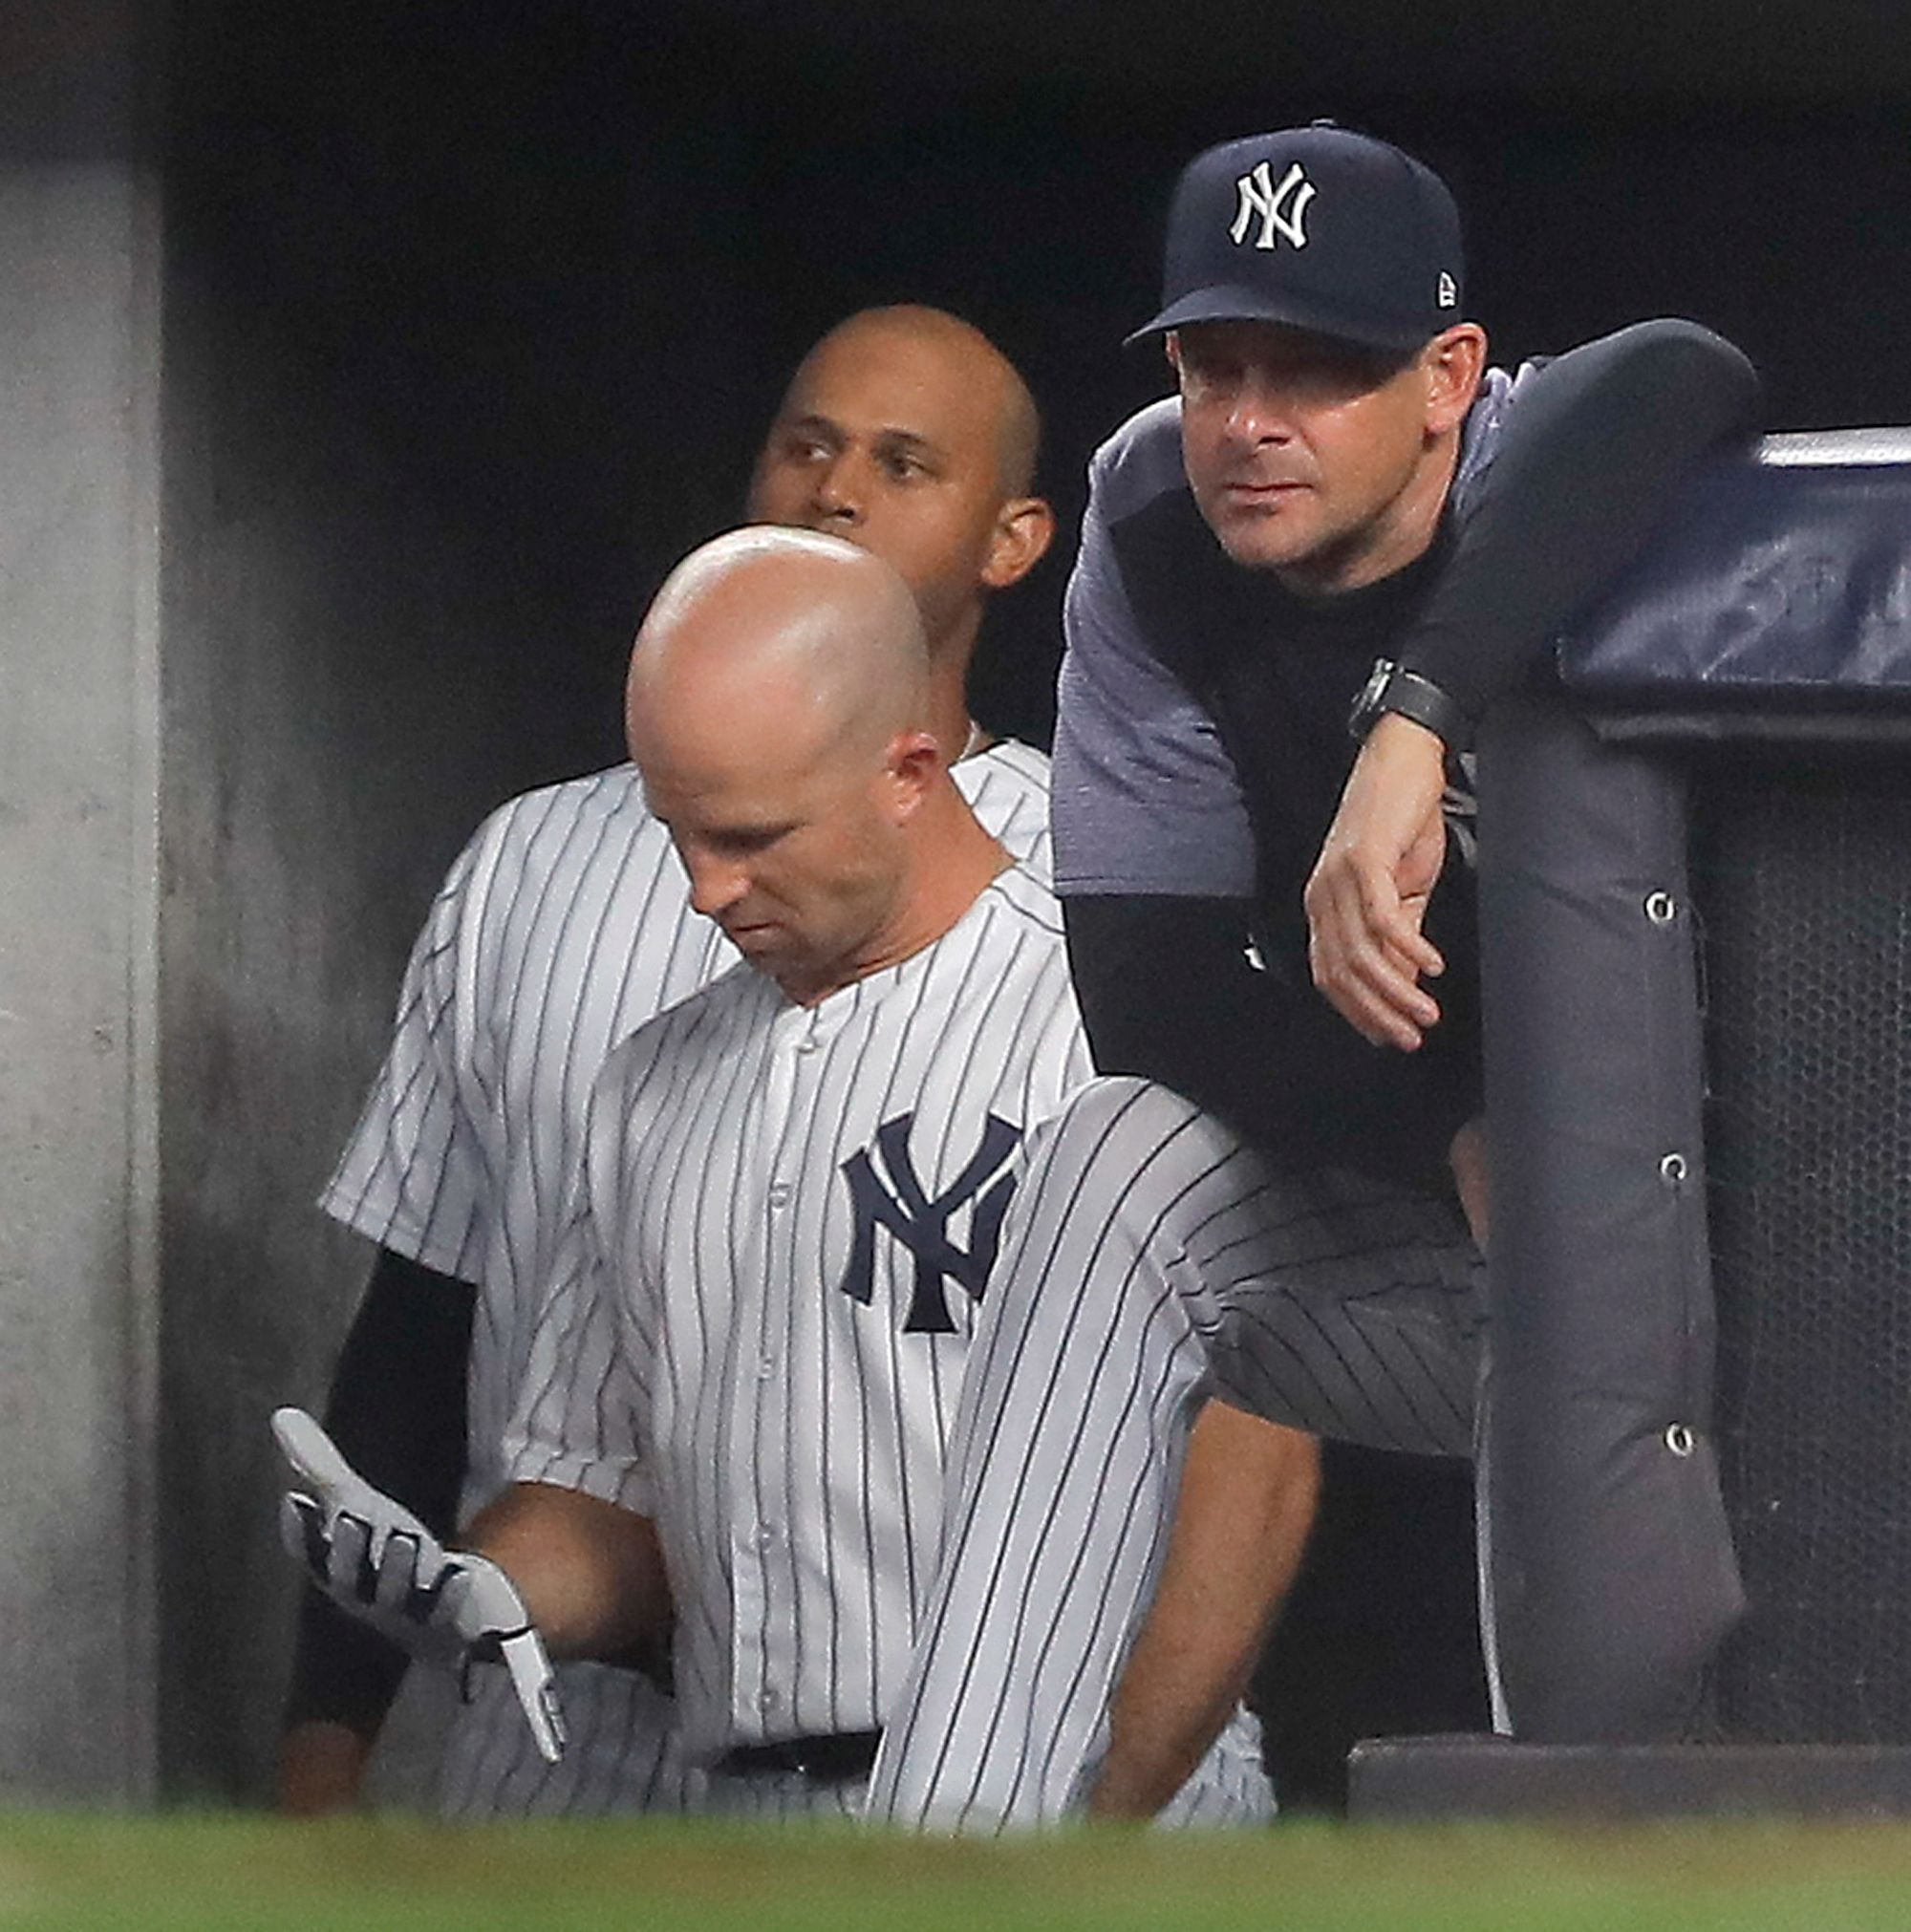 Out at home: Yankees eliminated by rival Red Sox in ALDS